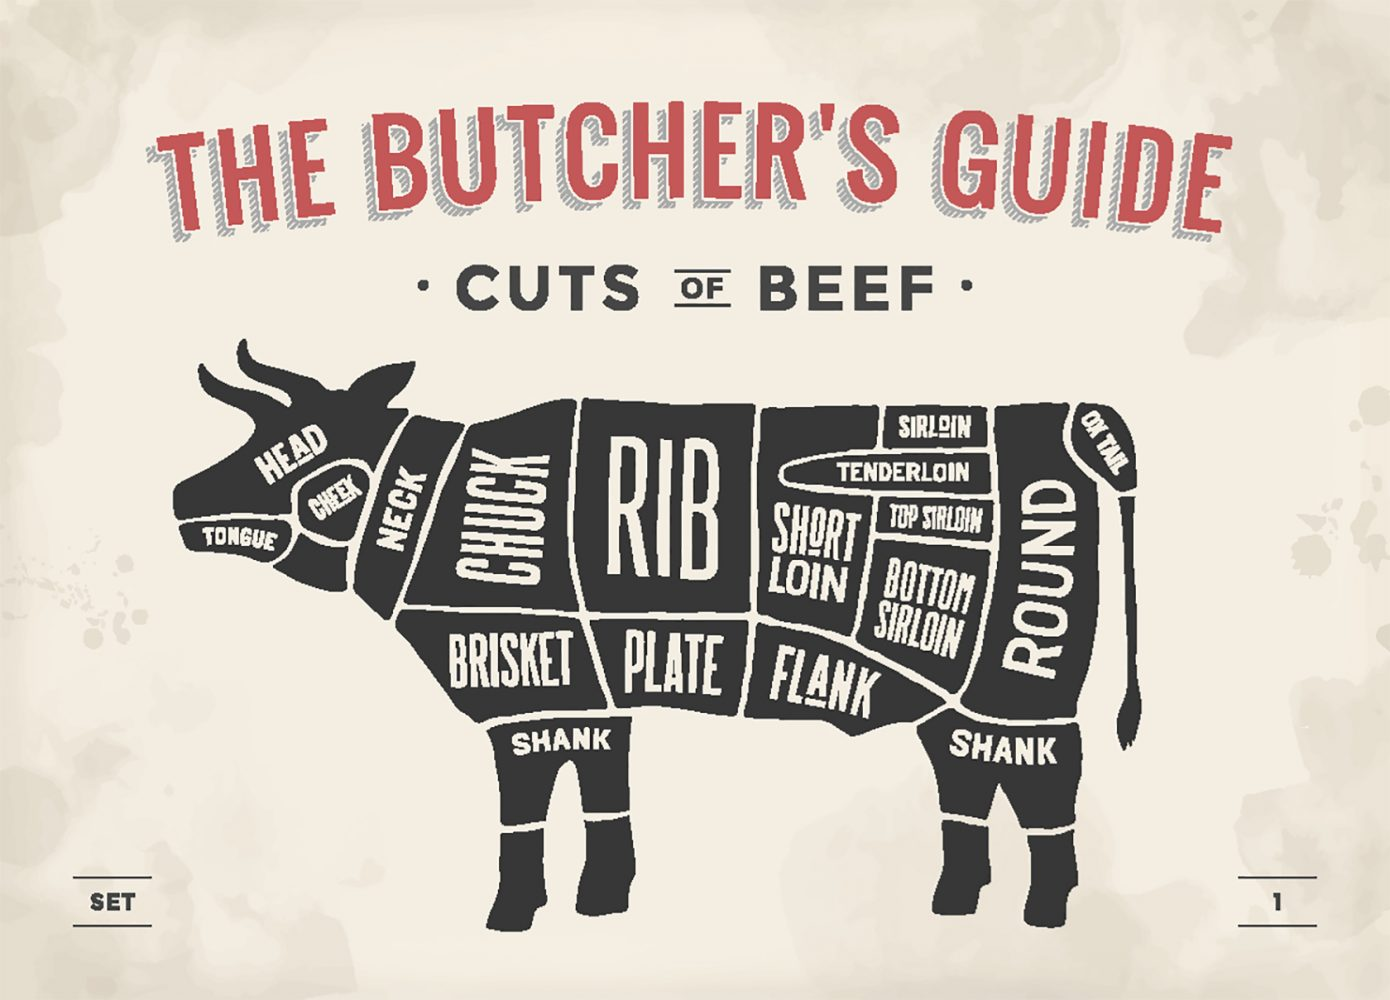 The Butcher's guide (carnivore diet)